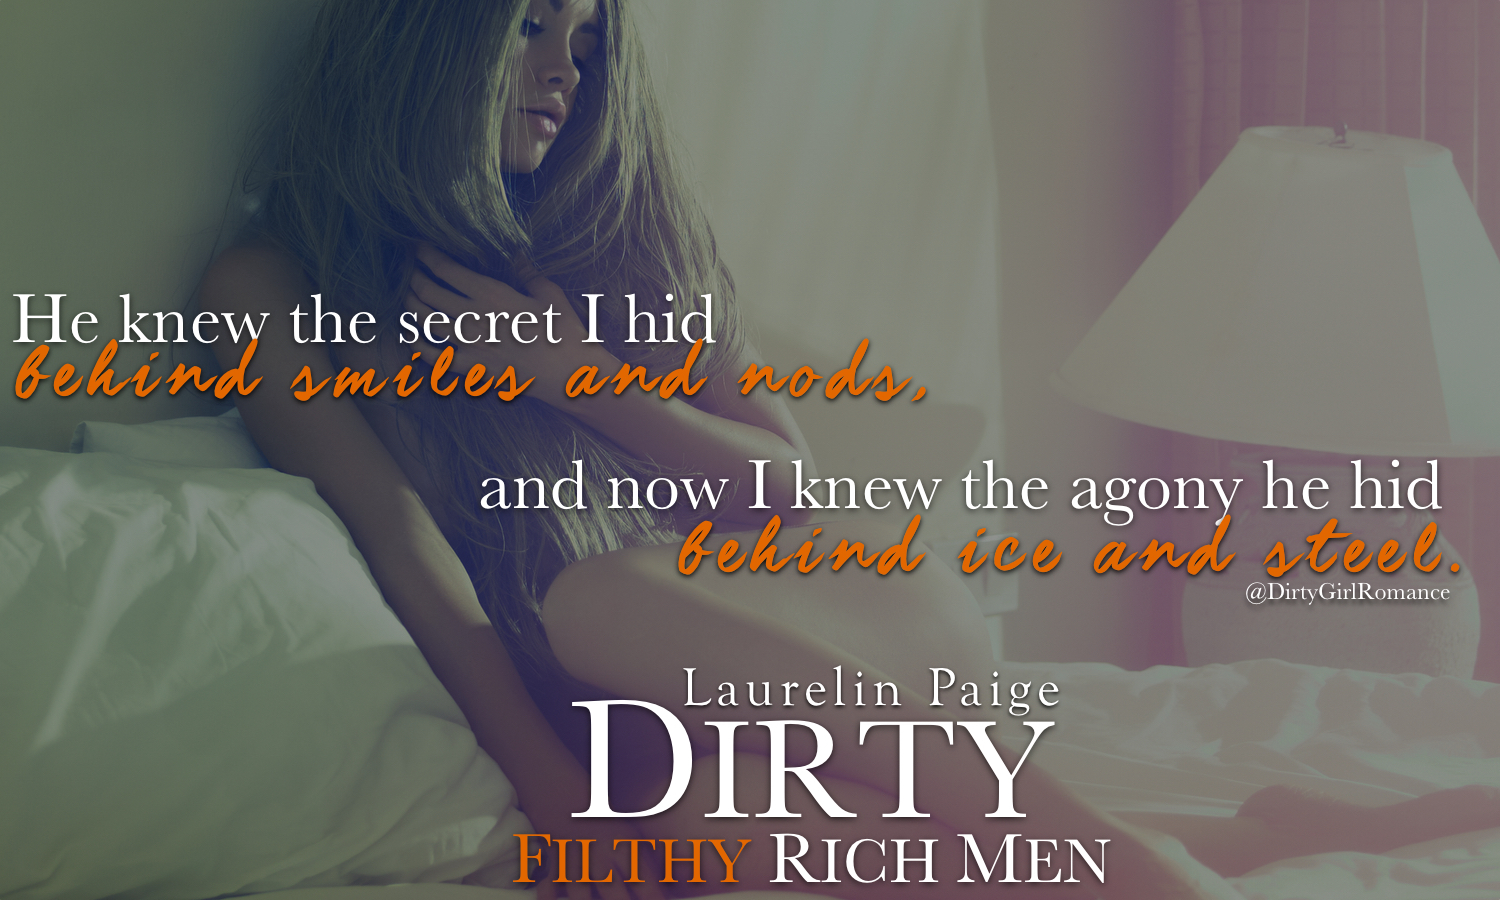 Lana dirty girl romance chicago ils review of dirty and in every way that it was vile and wrong i loved it in every way that it meant i was sick and shameful i embraced it fandeluxe PDF